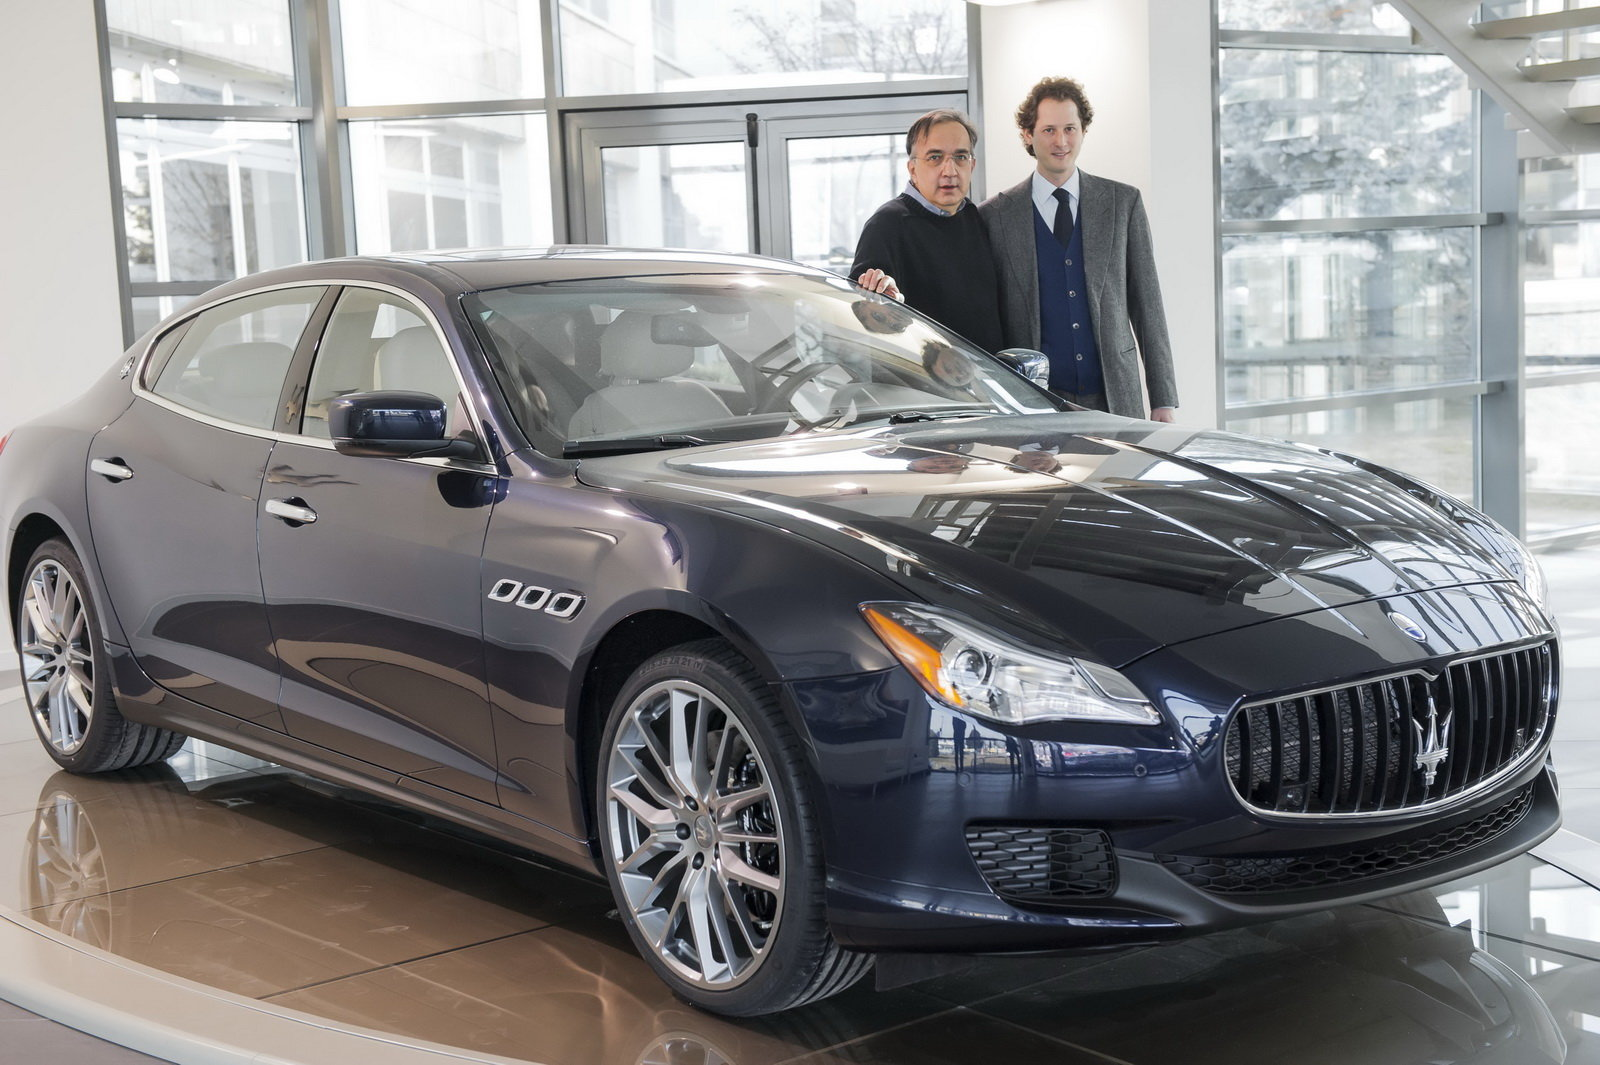 maserati quattroporte problemi with Foto on Usa Maserati Richiama 30 Mila Fra Quattroporte E Ghibli also Ciao Thema also Maserati further Showthread in addition Maserati baby quattroporte 233951.